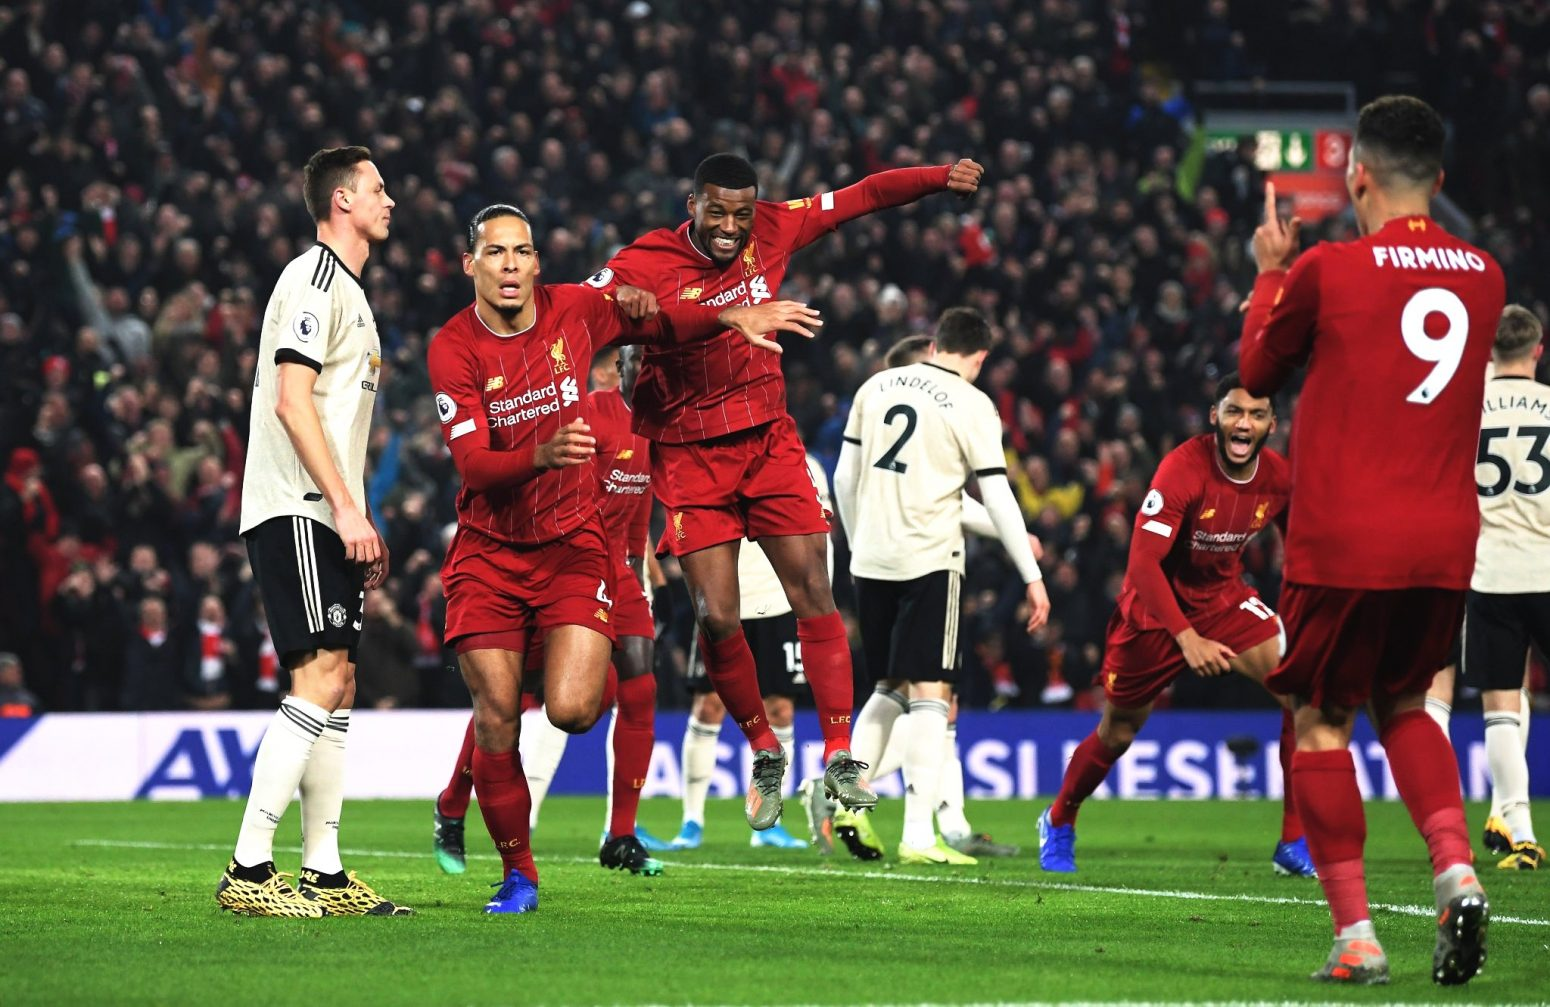 Liverpool 2-0 Man United – Highlights and Goals (Video)